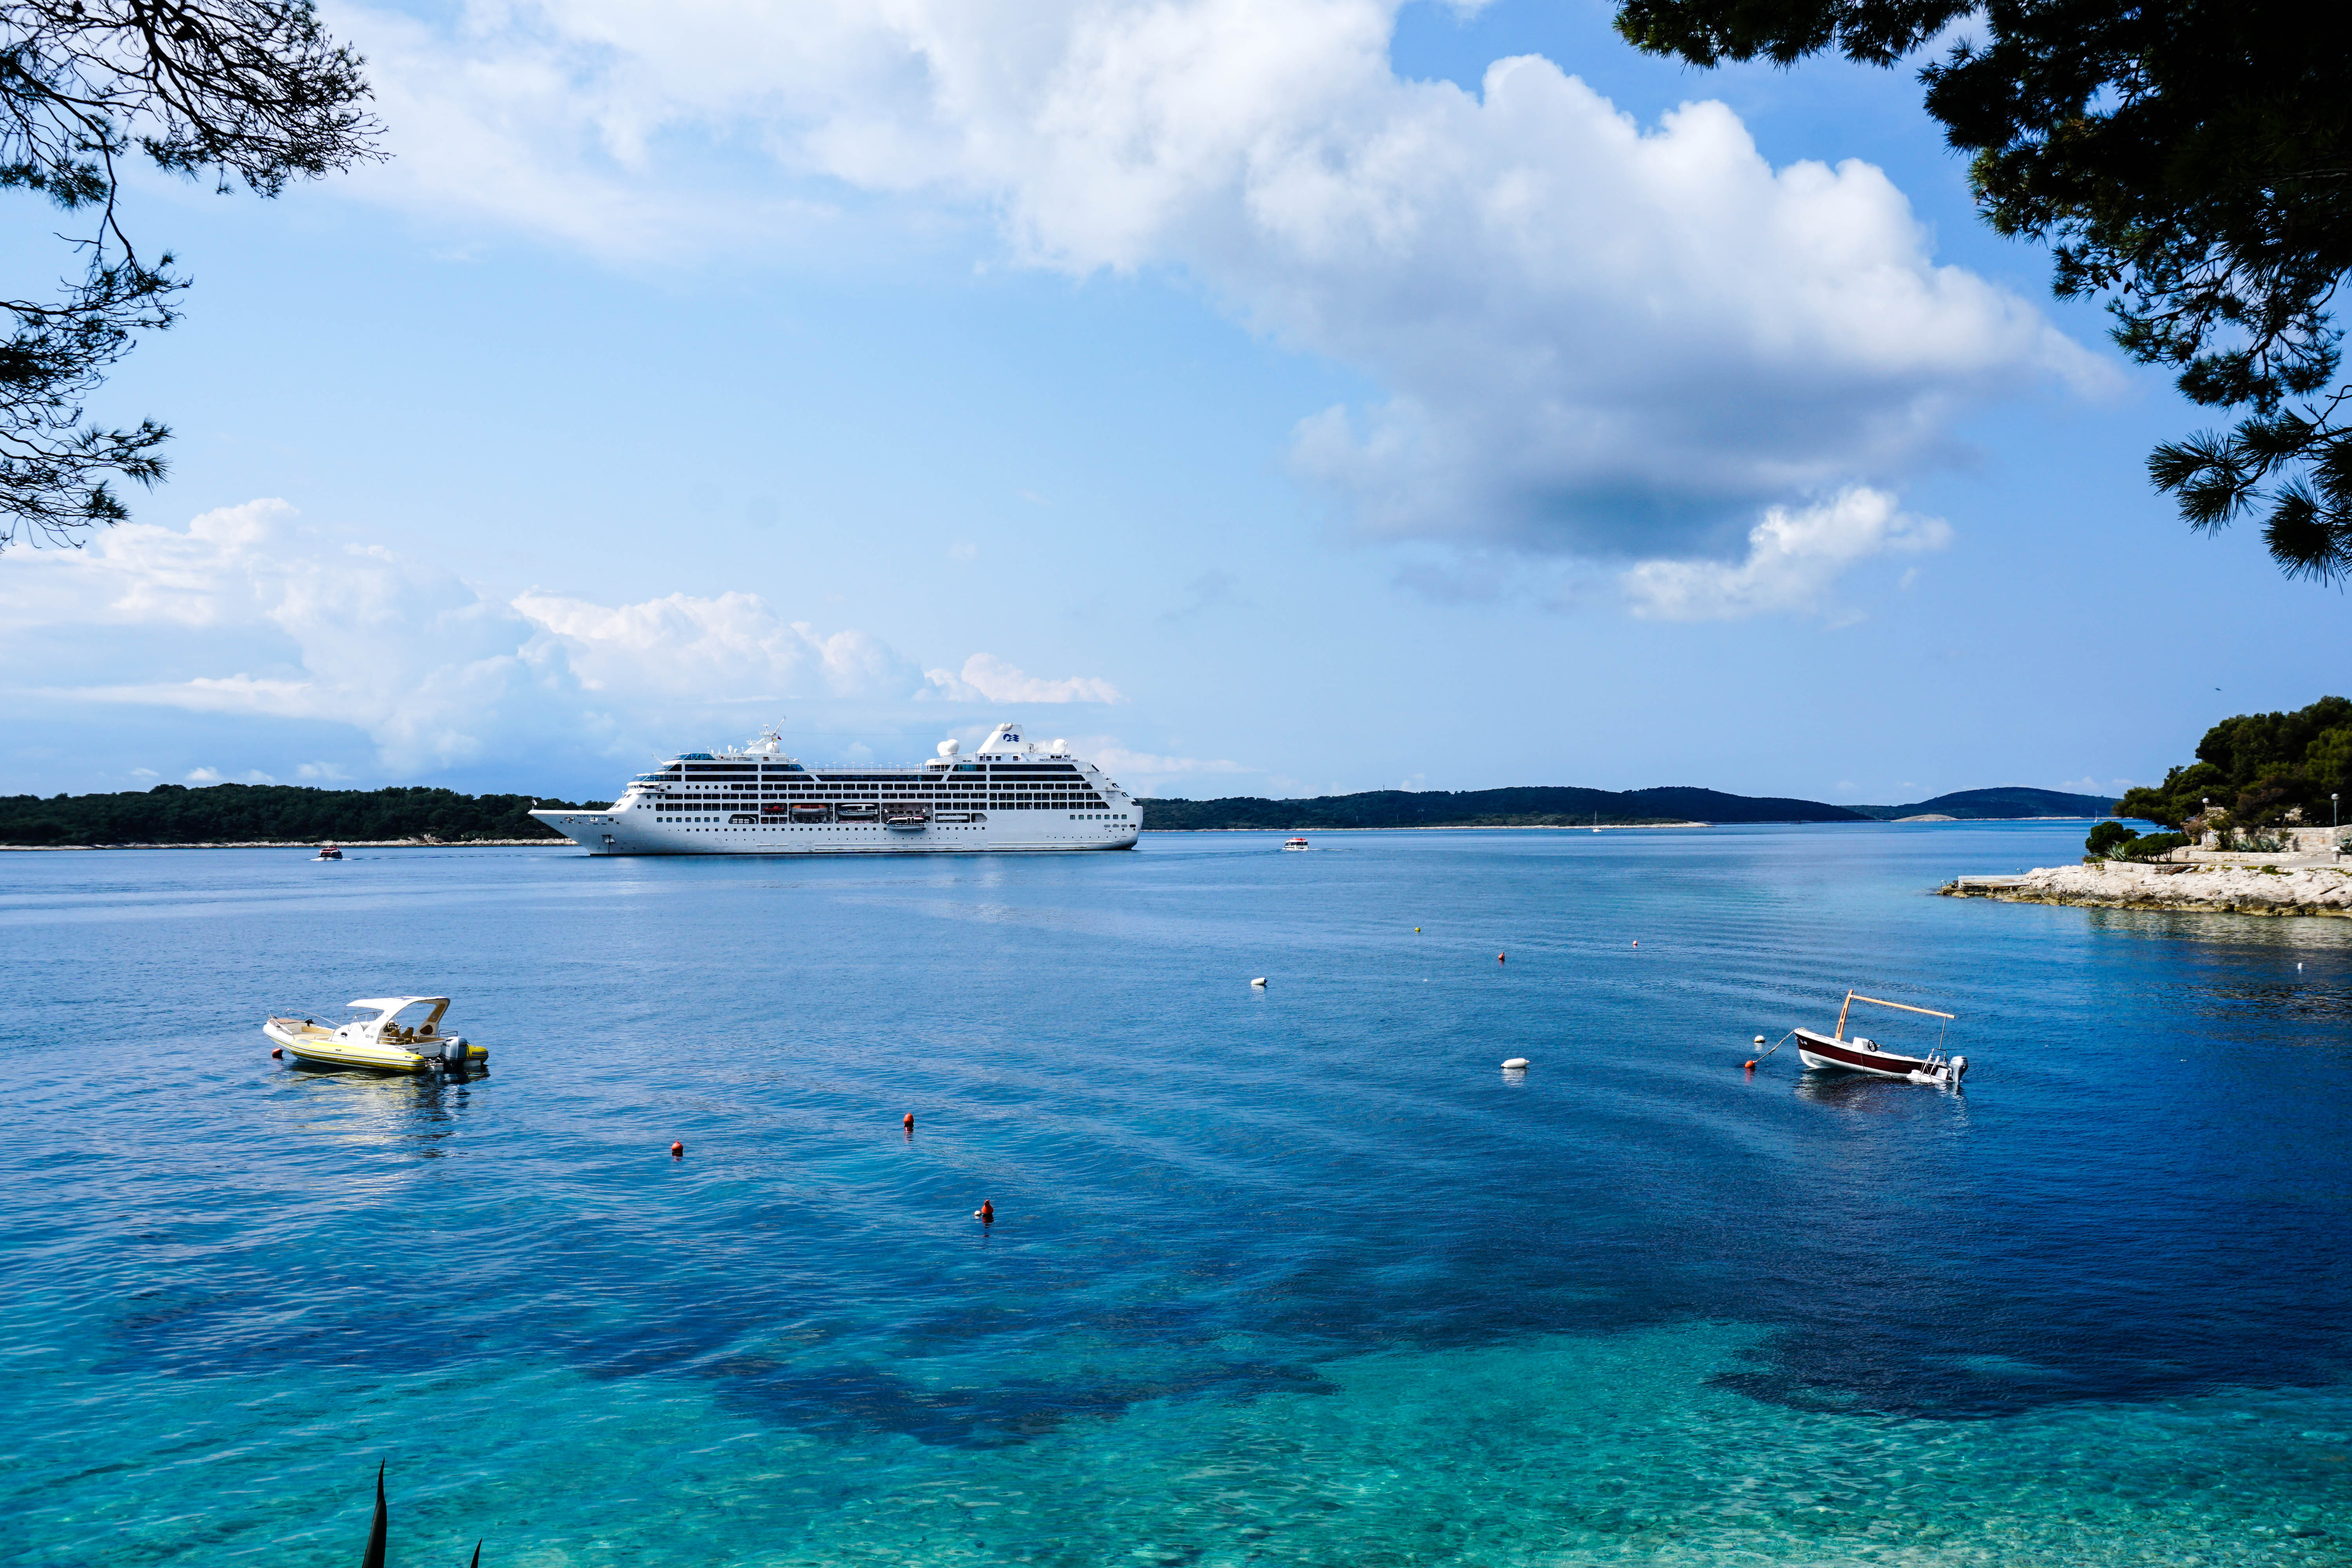 Cruise Ship On The Ocean In The Seascape In Croatia Image